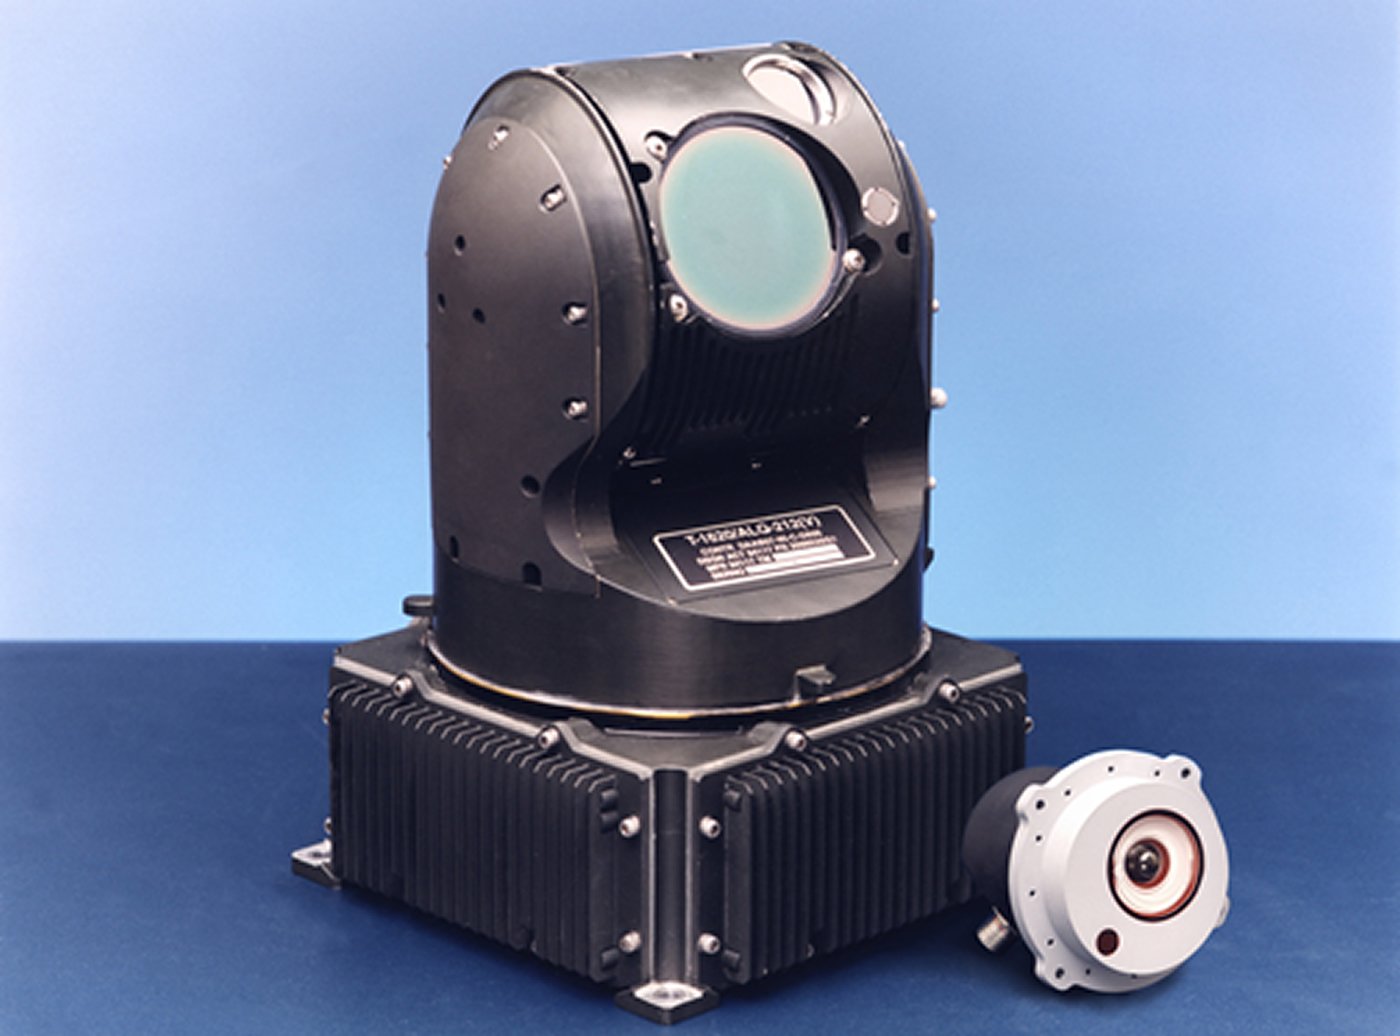 Naval Open Source Intelligence Anti Missile Counter